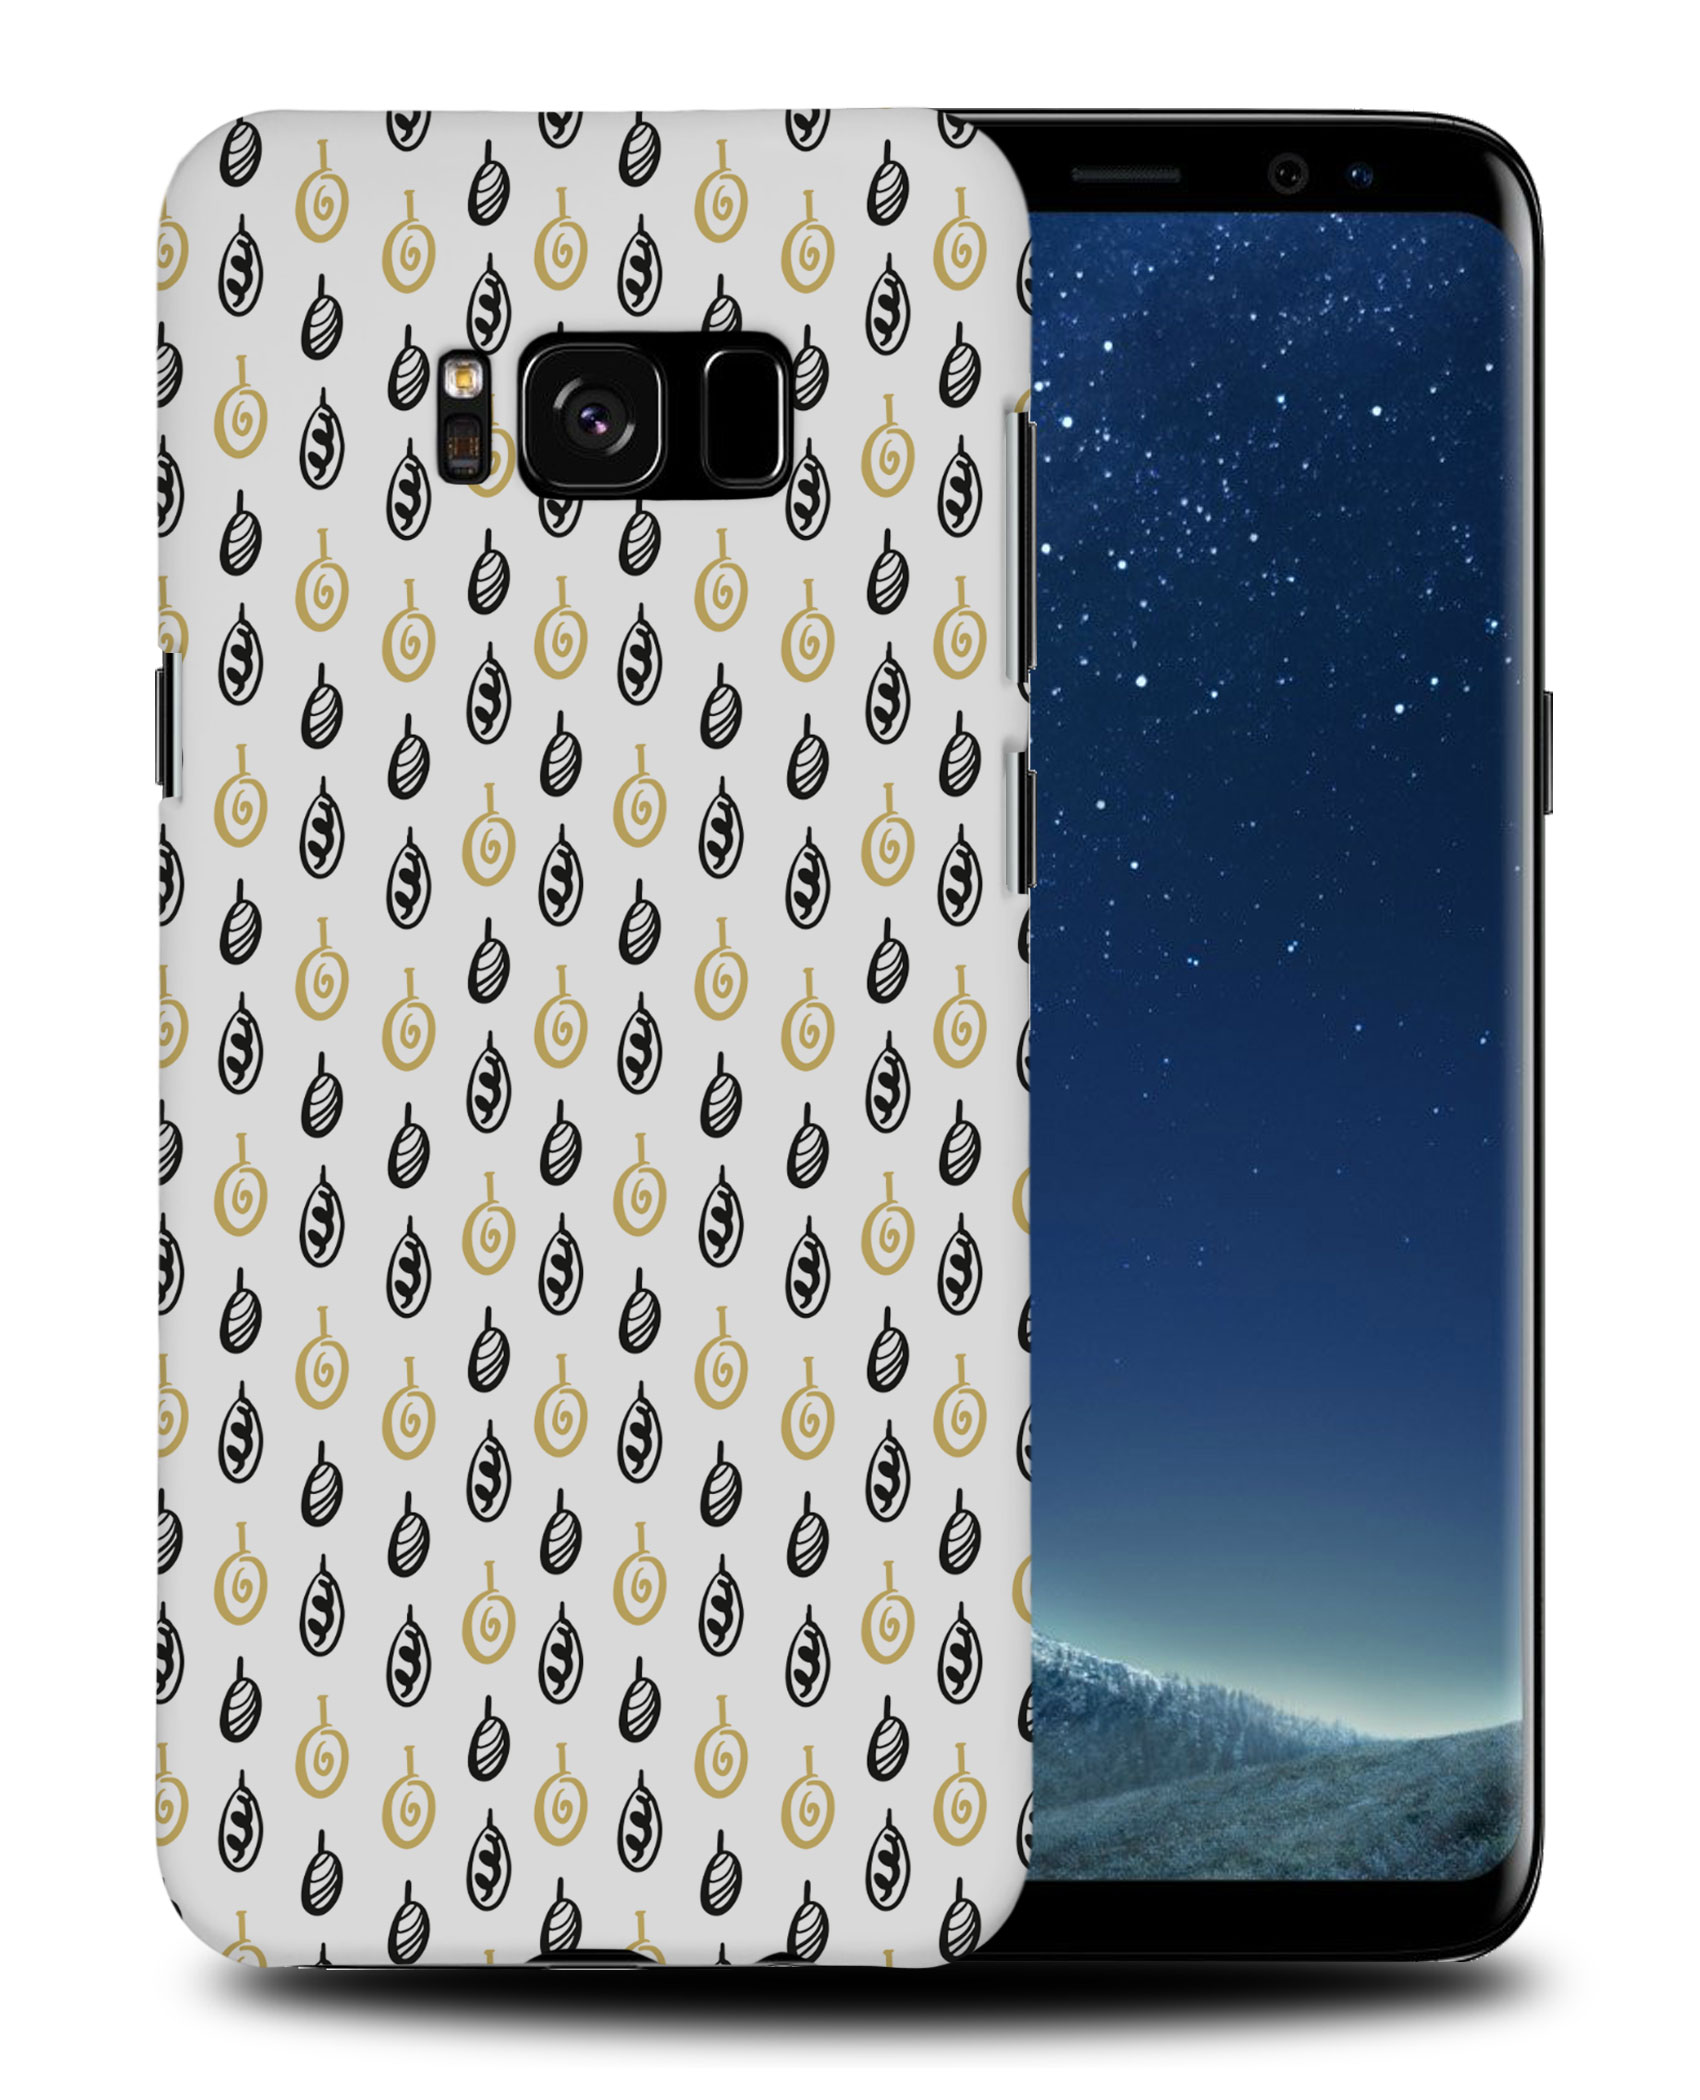 CUTE-SIGNS-CASE-SAMSUNG-GALAXY-S3-S4-S5-S6-S7-S8-S9-PLUS